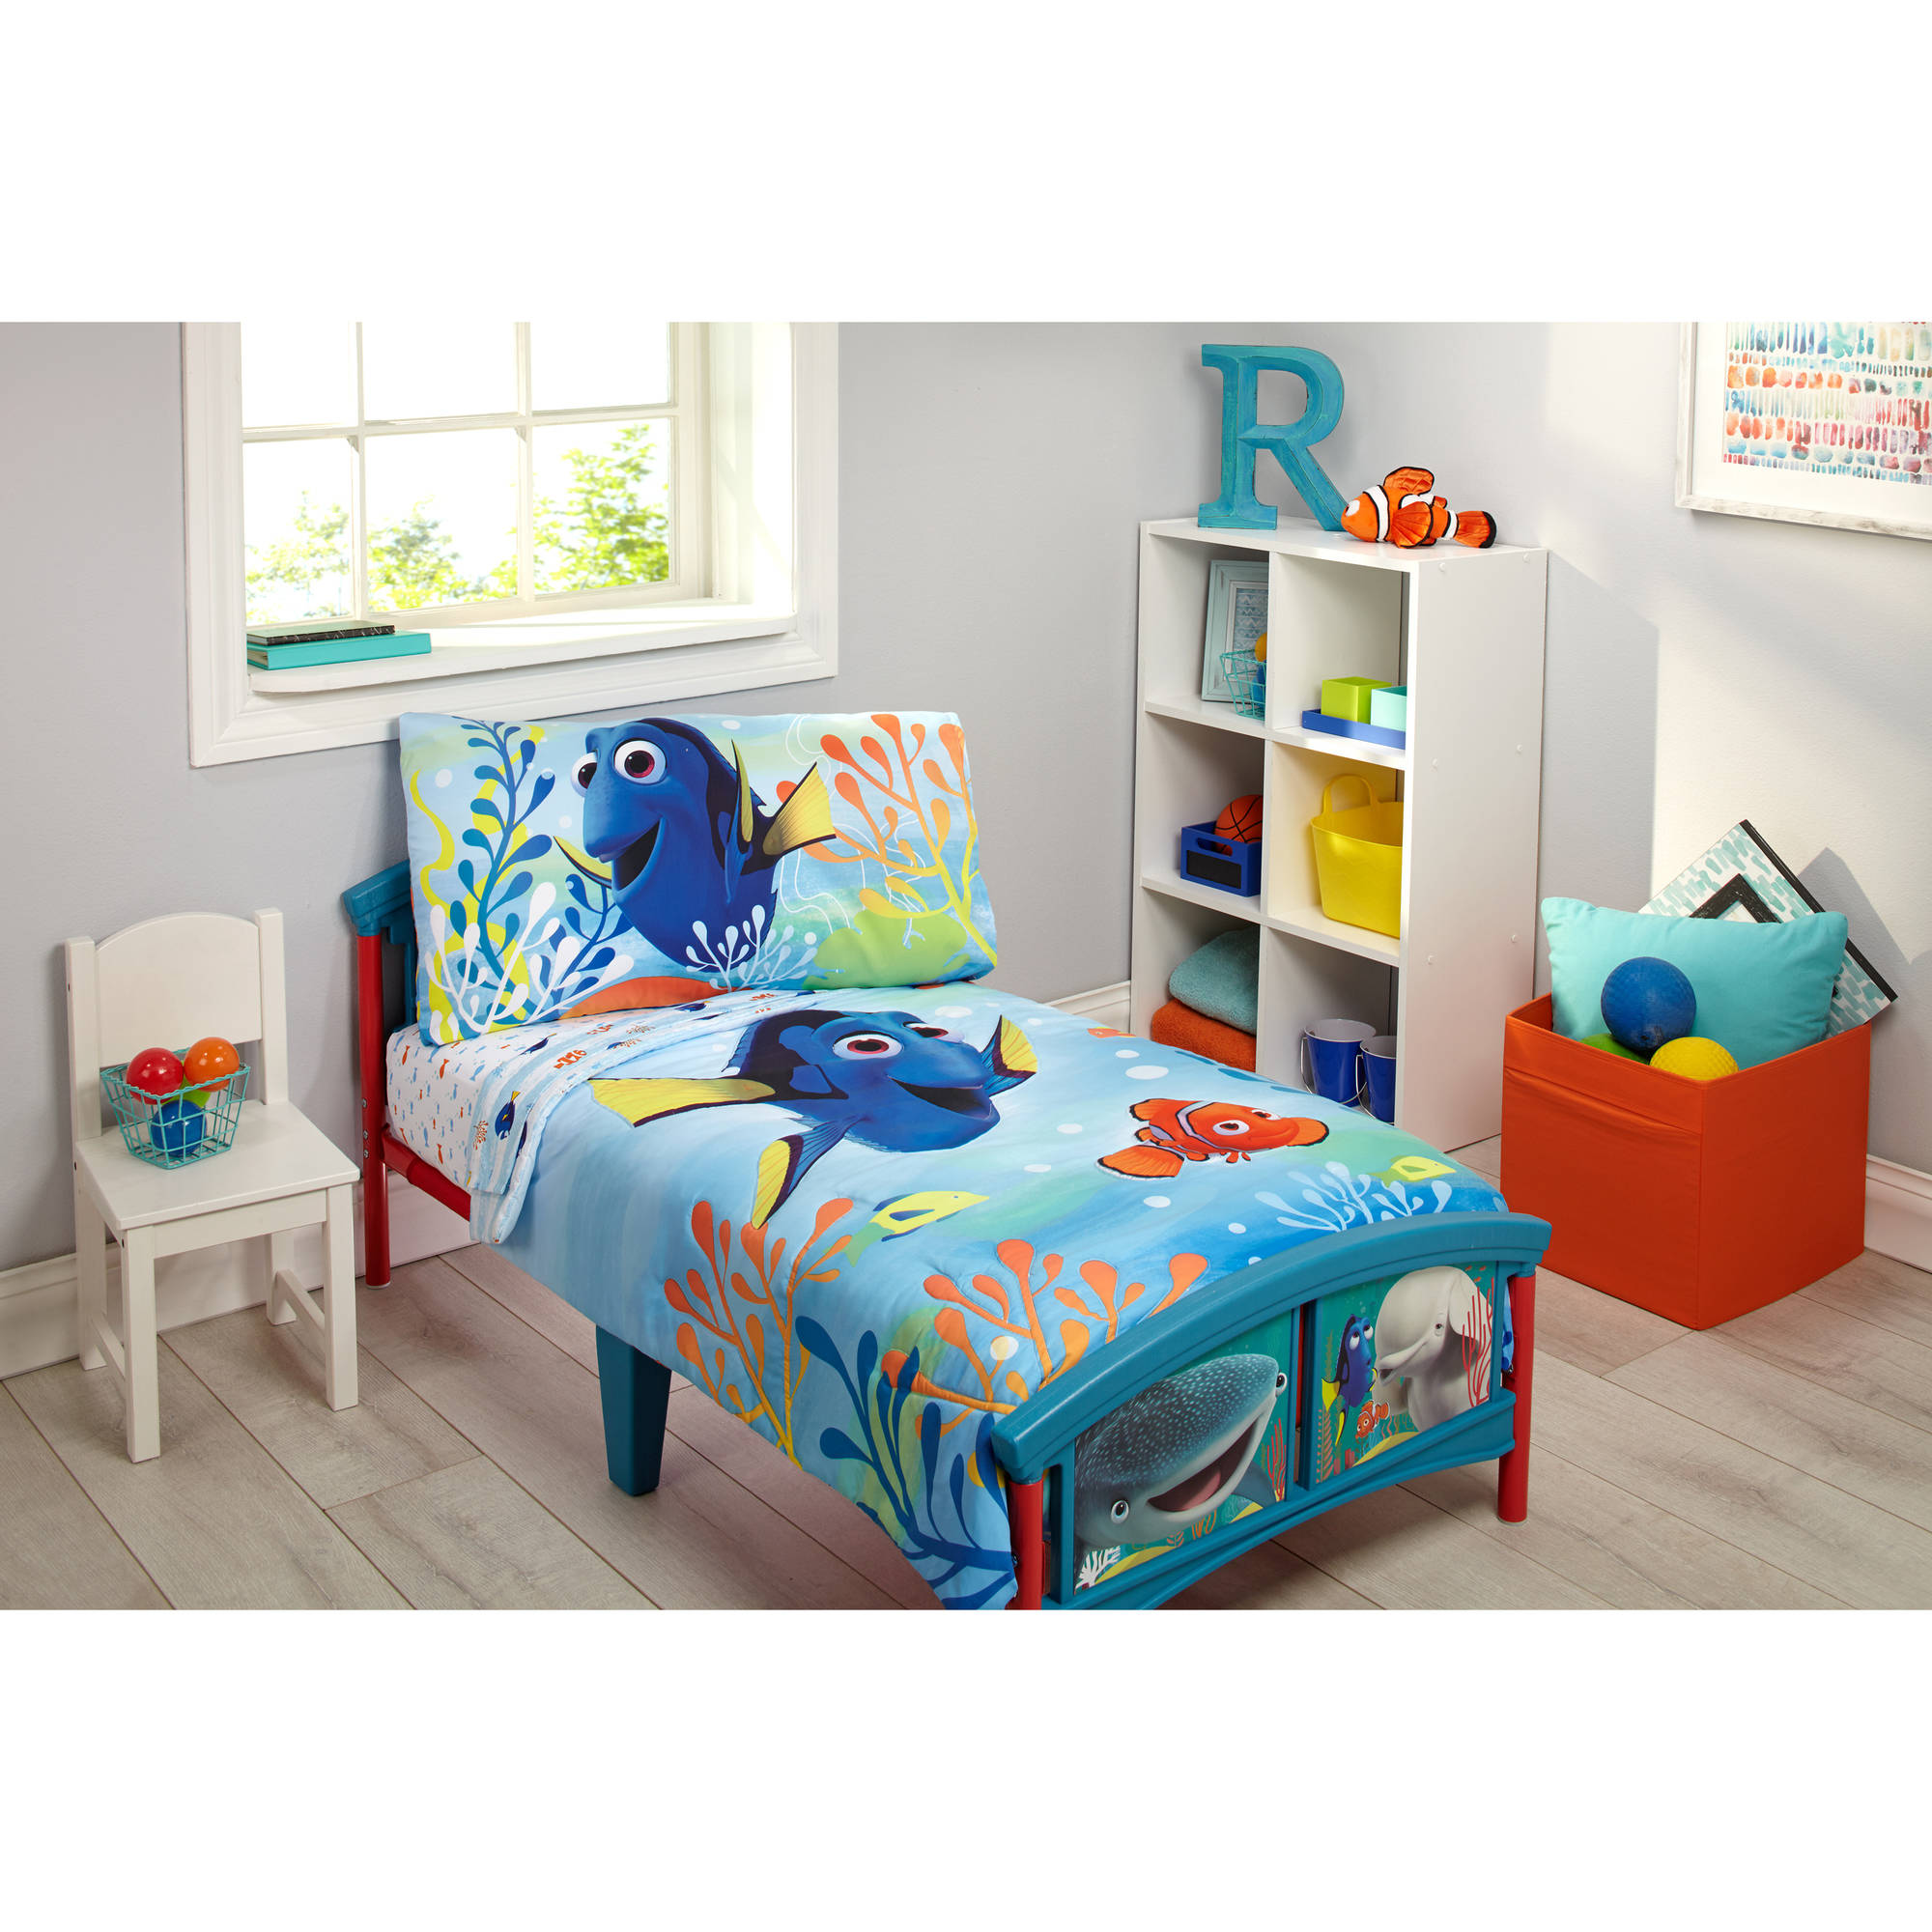 disney finding dory 4-piece toddler bedding set - walmart.com OFHATRV